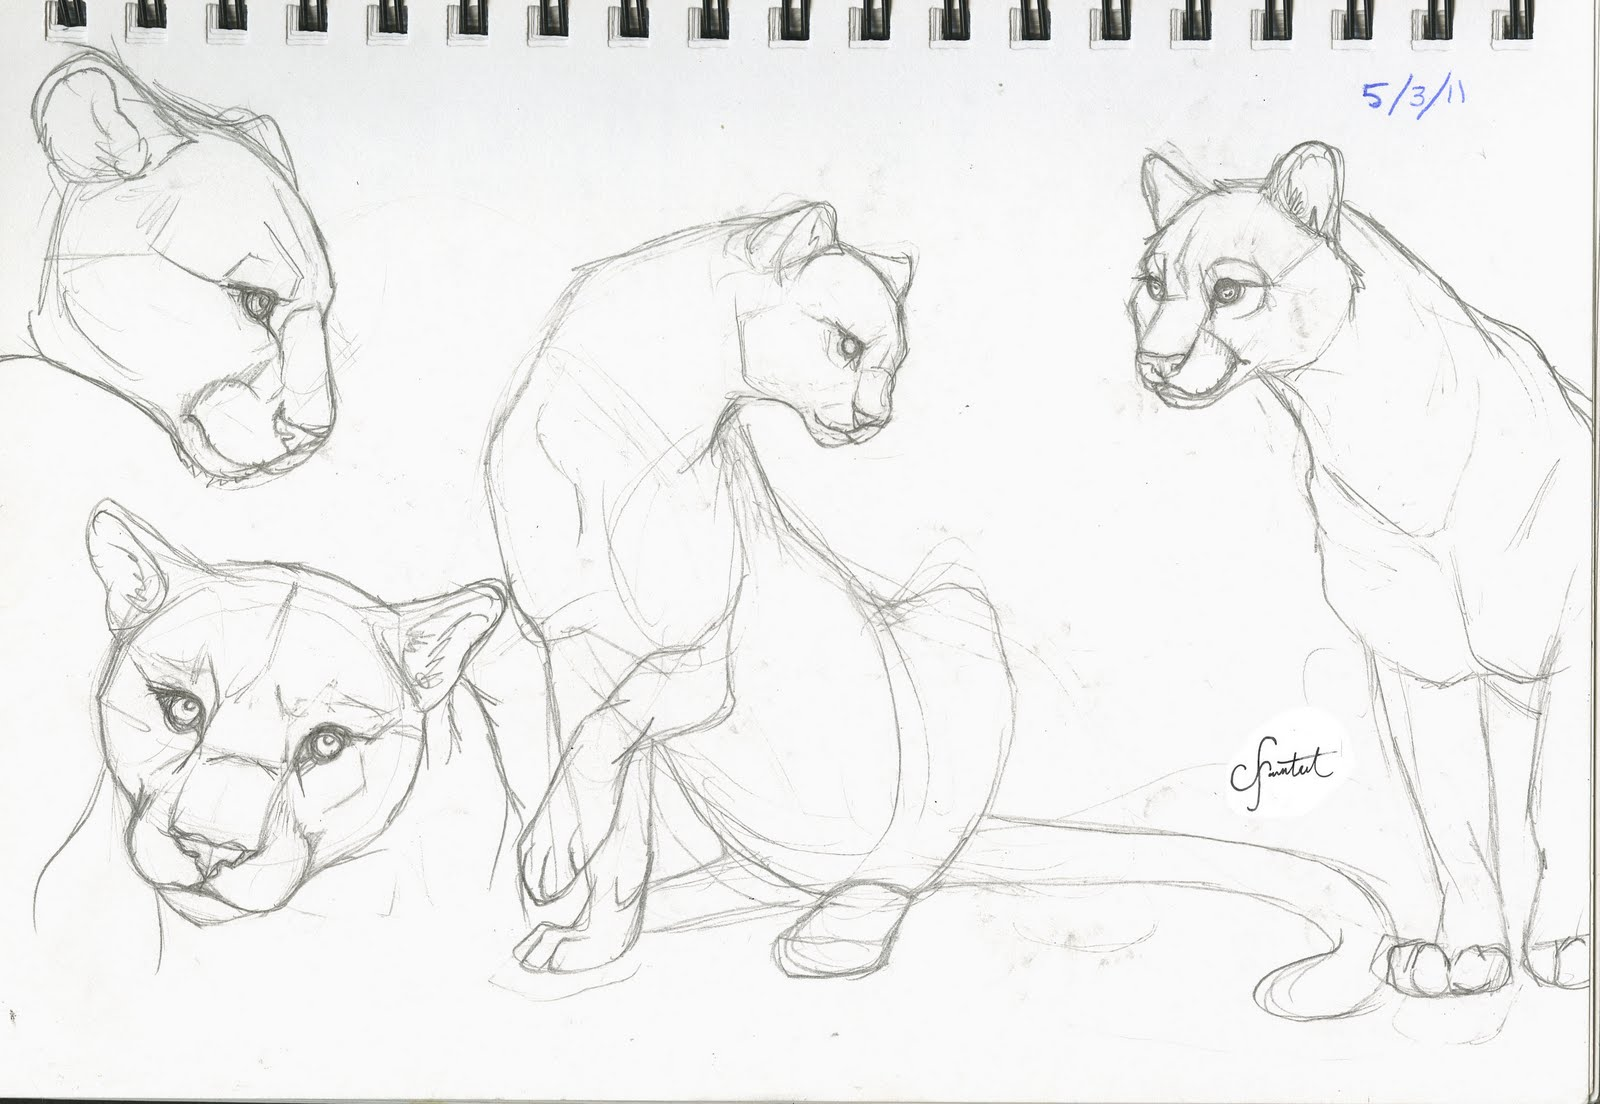 coloring pages mountain lion - photo#11